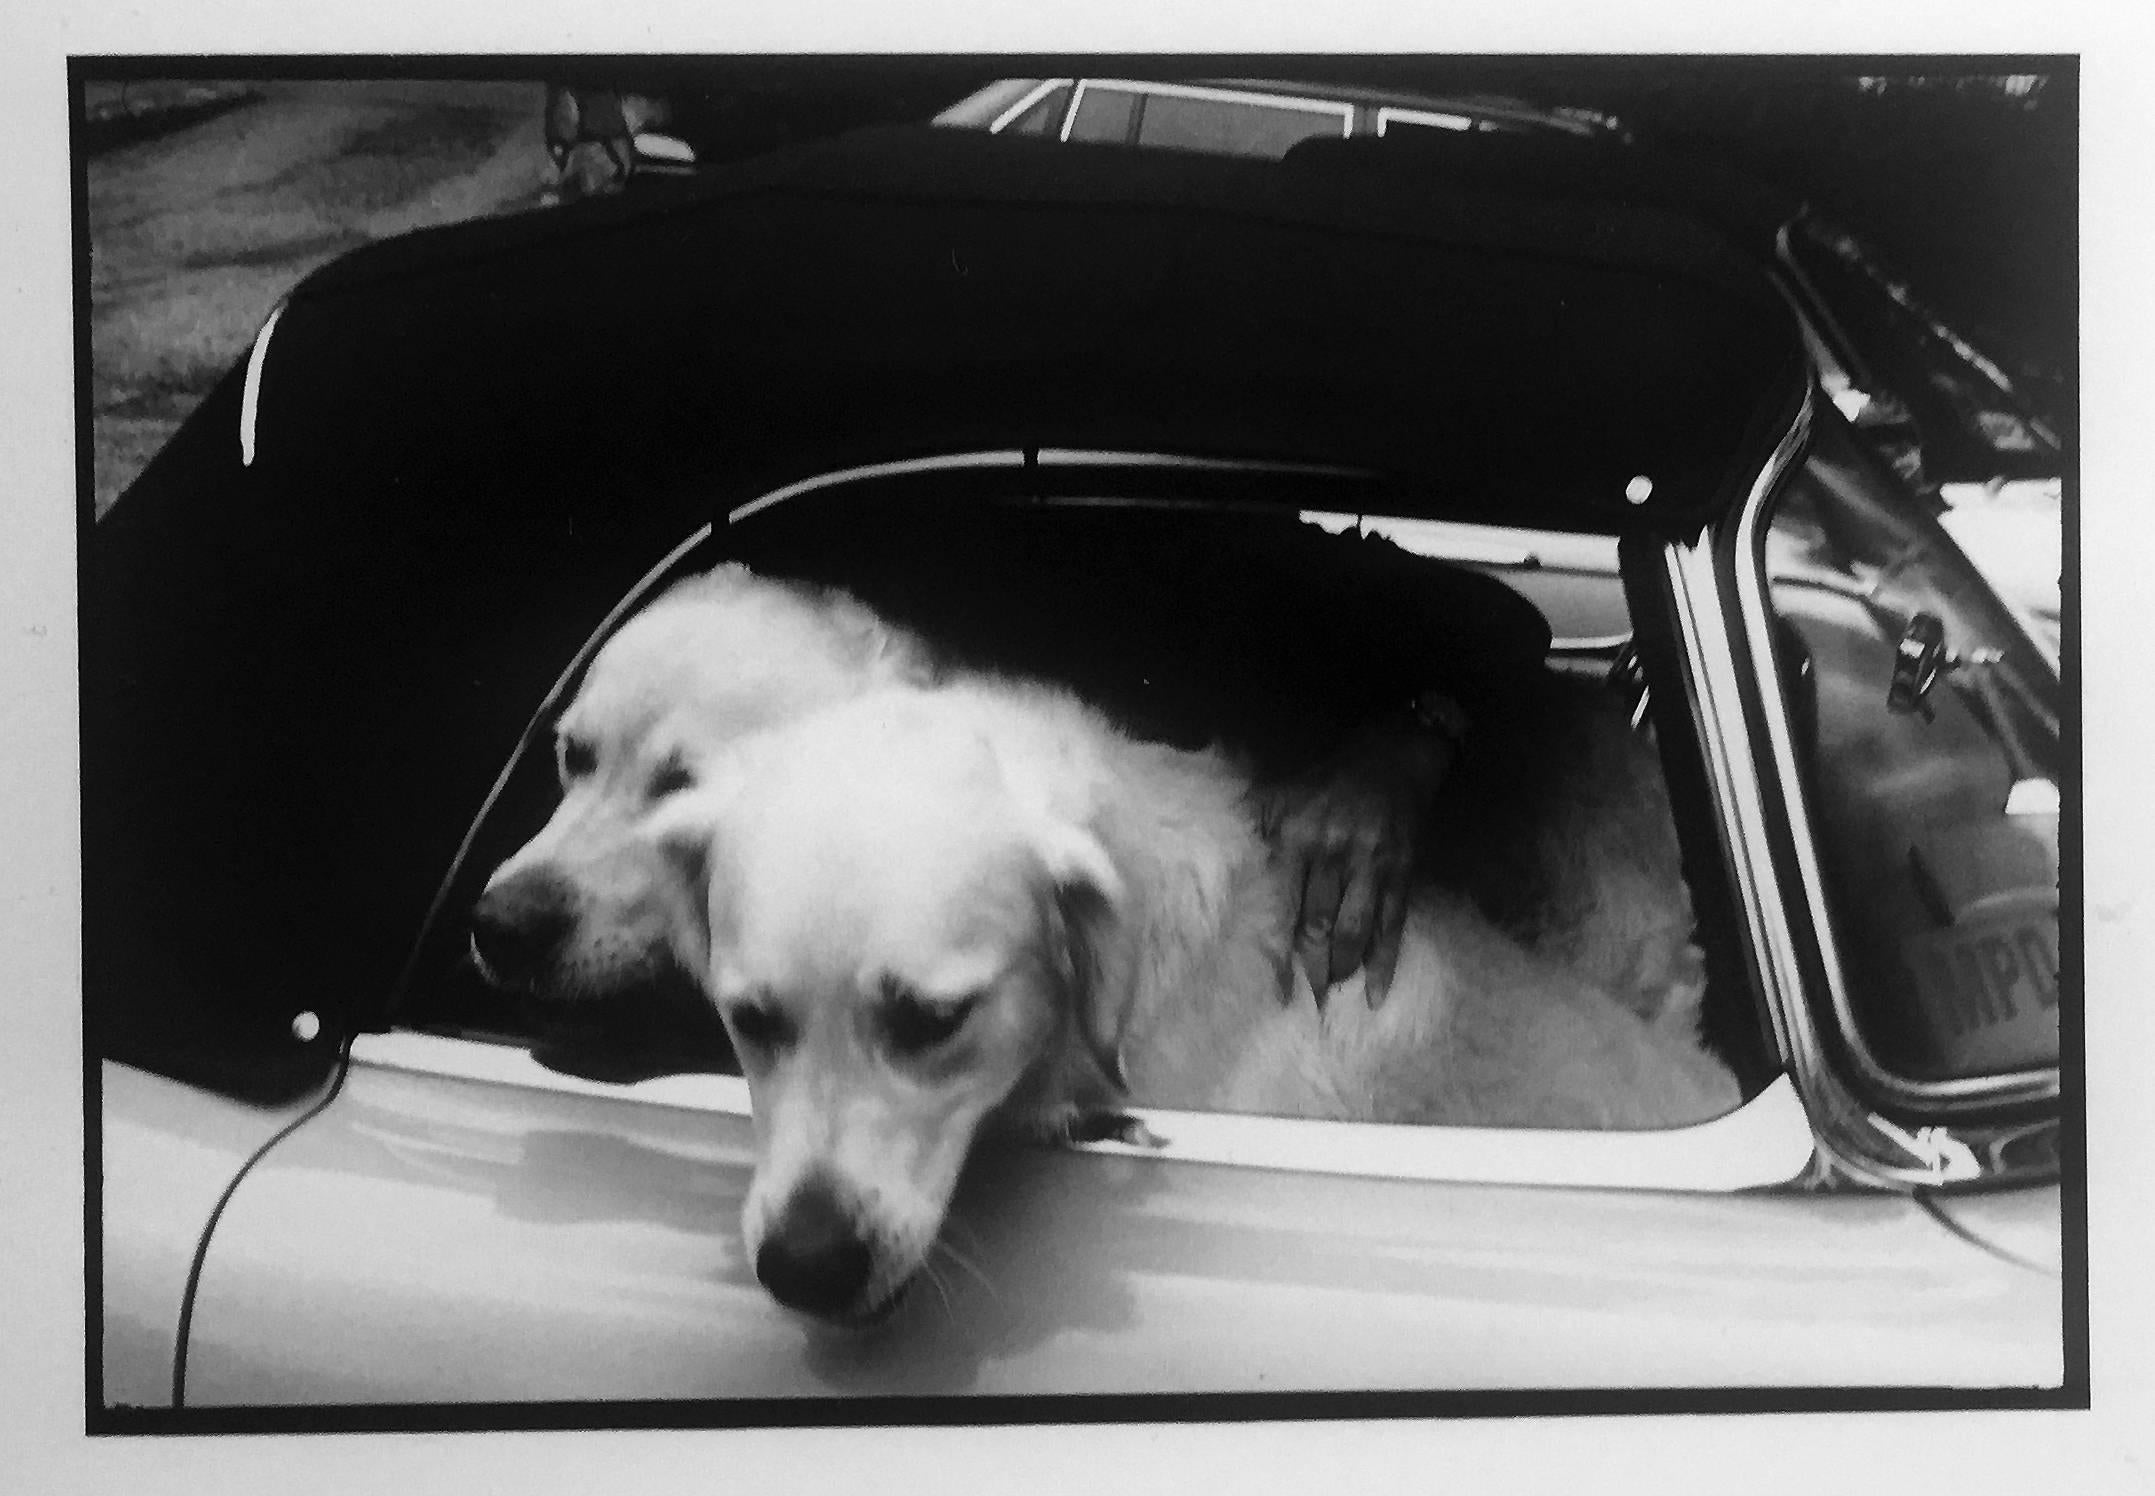 Dogs, USA, Greenwich, CT,  Black and White Photograph of Pets in Sports Cars